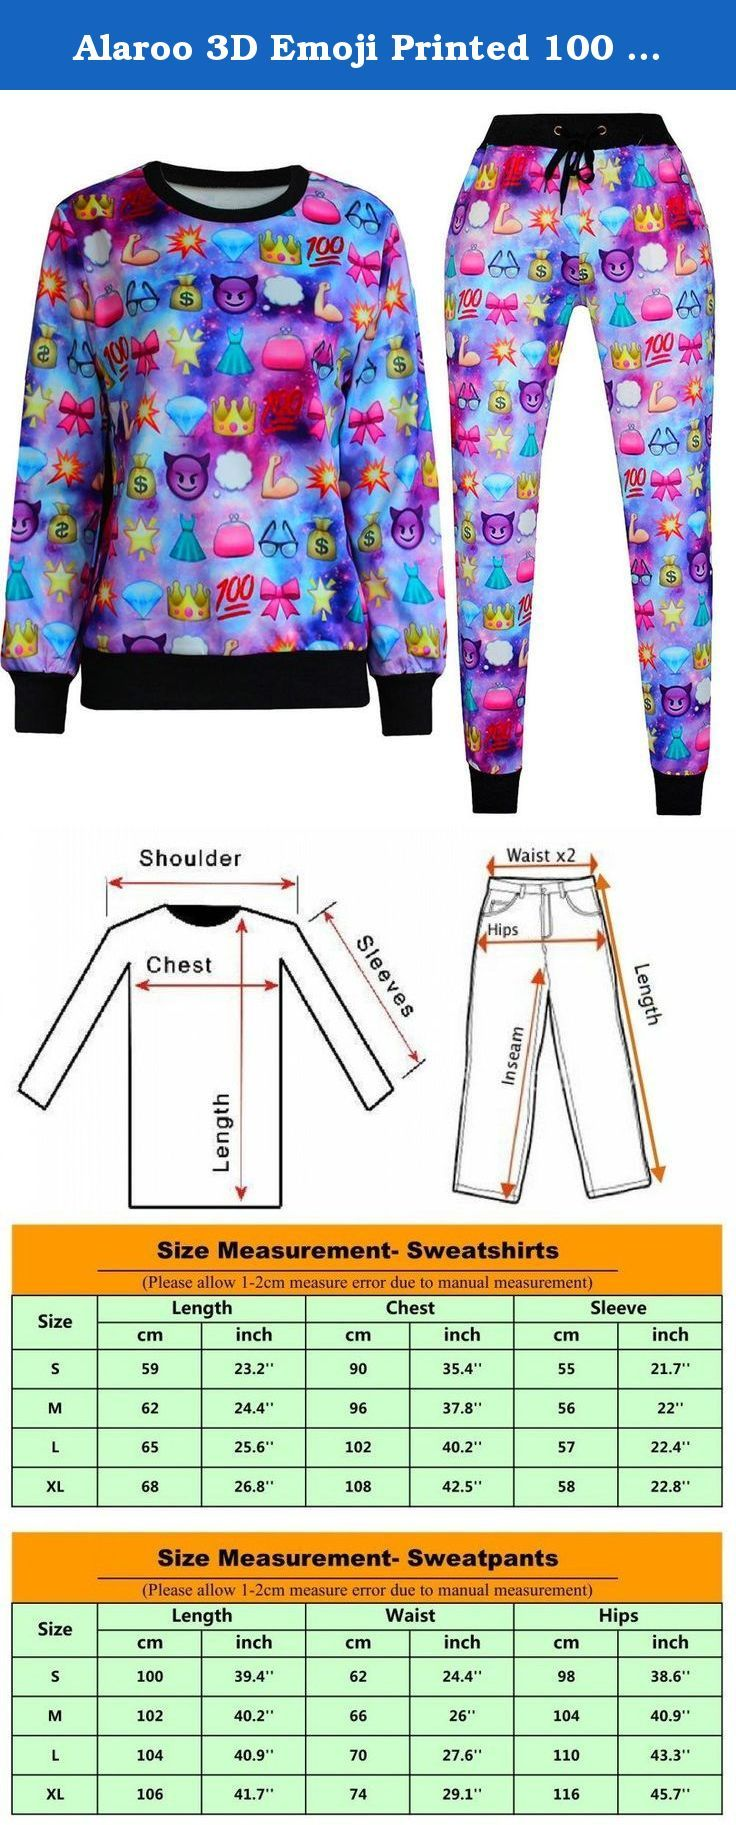 Alaroo 3D Emoji Printed 100 Score Jogger Tracksuit Drawstring for Running S. Description: Gender: women Item Type: Tracksuit (Sweatshirts and Sweatpants) Unit Sweatshirt Weight: 0.77 lb each (350g), Unit Sweatshirt Weight: 0.7 lb each (320g) Type: Pullovers Sleeve Style: Long Sleeve Pattern Type: Emoticon Sleeve Length: Full Collar: O-Neck Color Style: Natural Color Material: Cotton,Polyester,Spandex Type: 3D Harajuku print Style: crewneck.